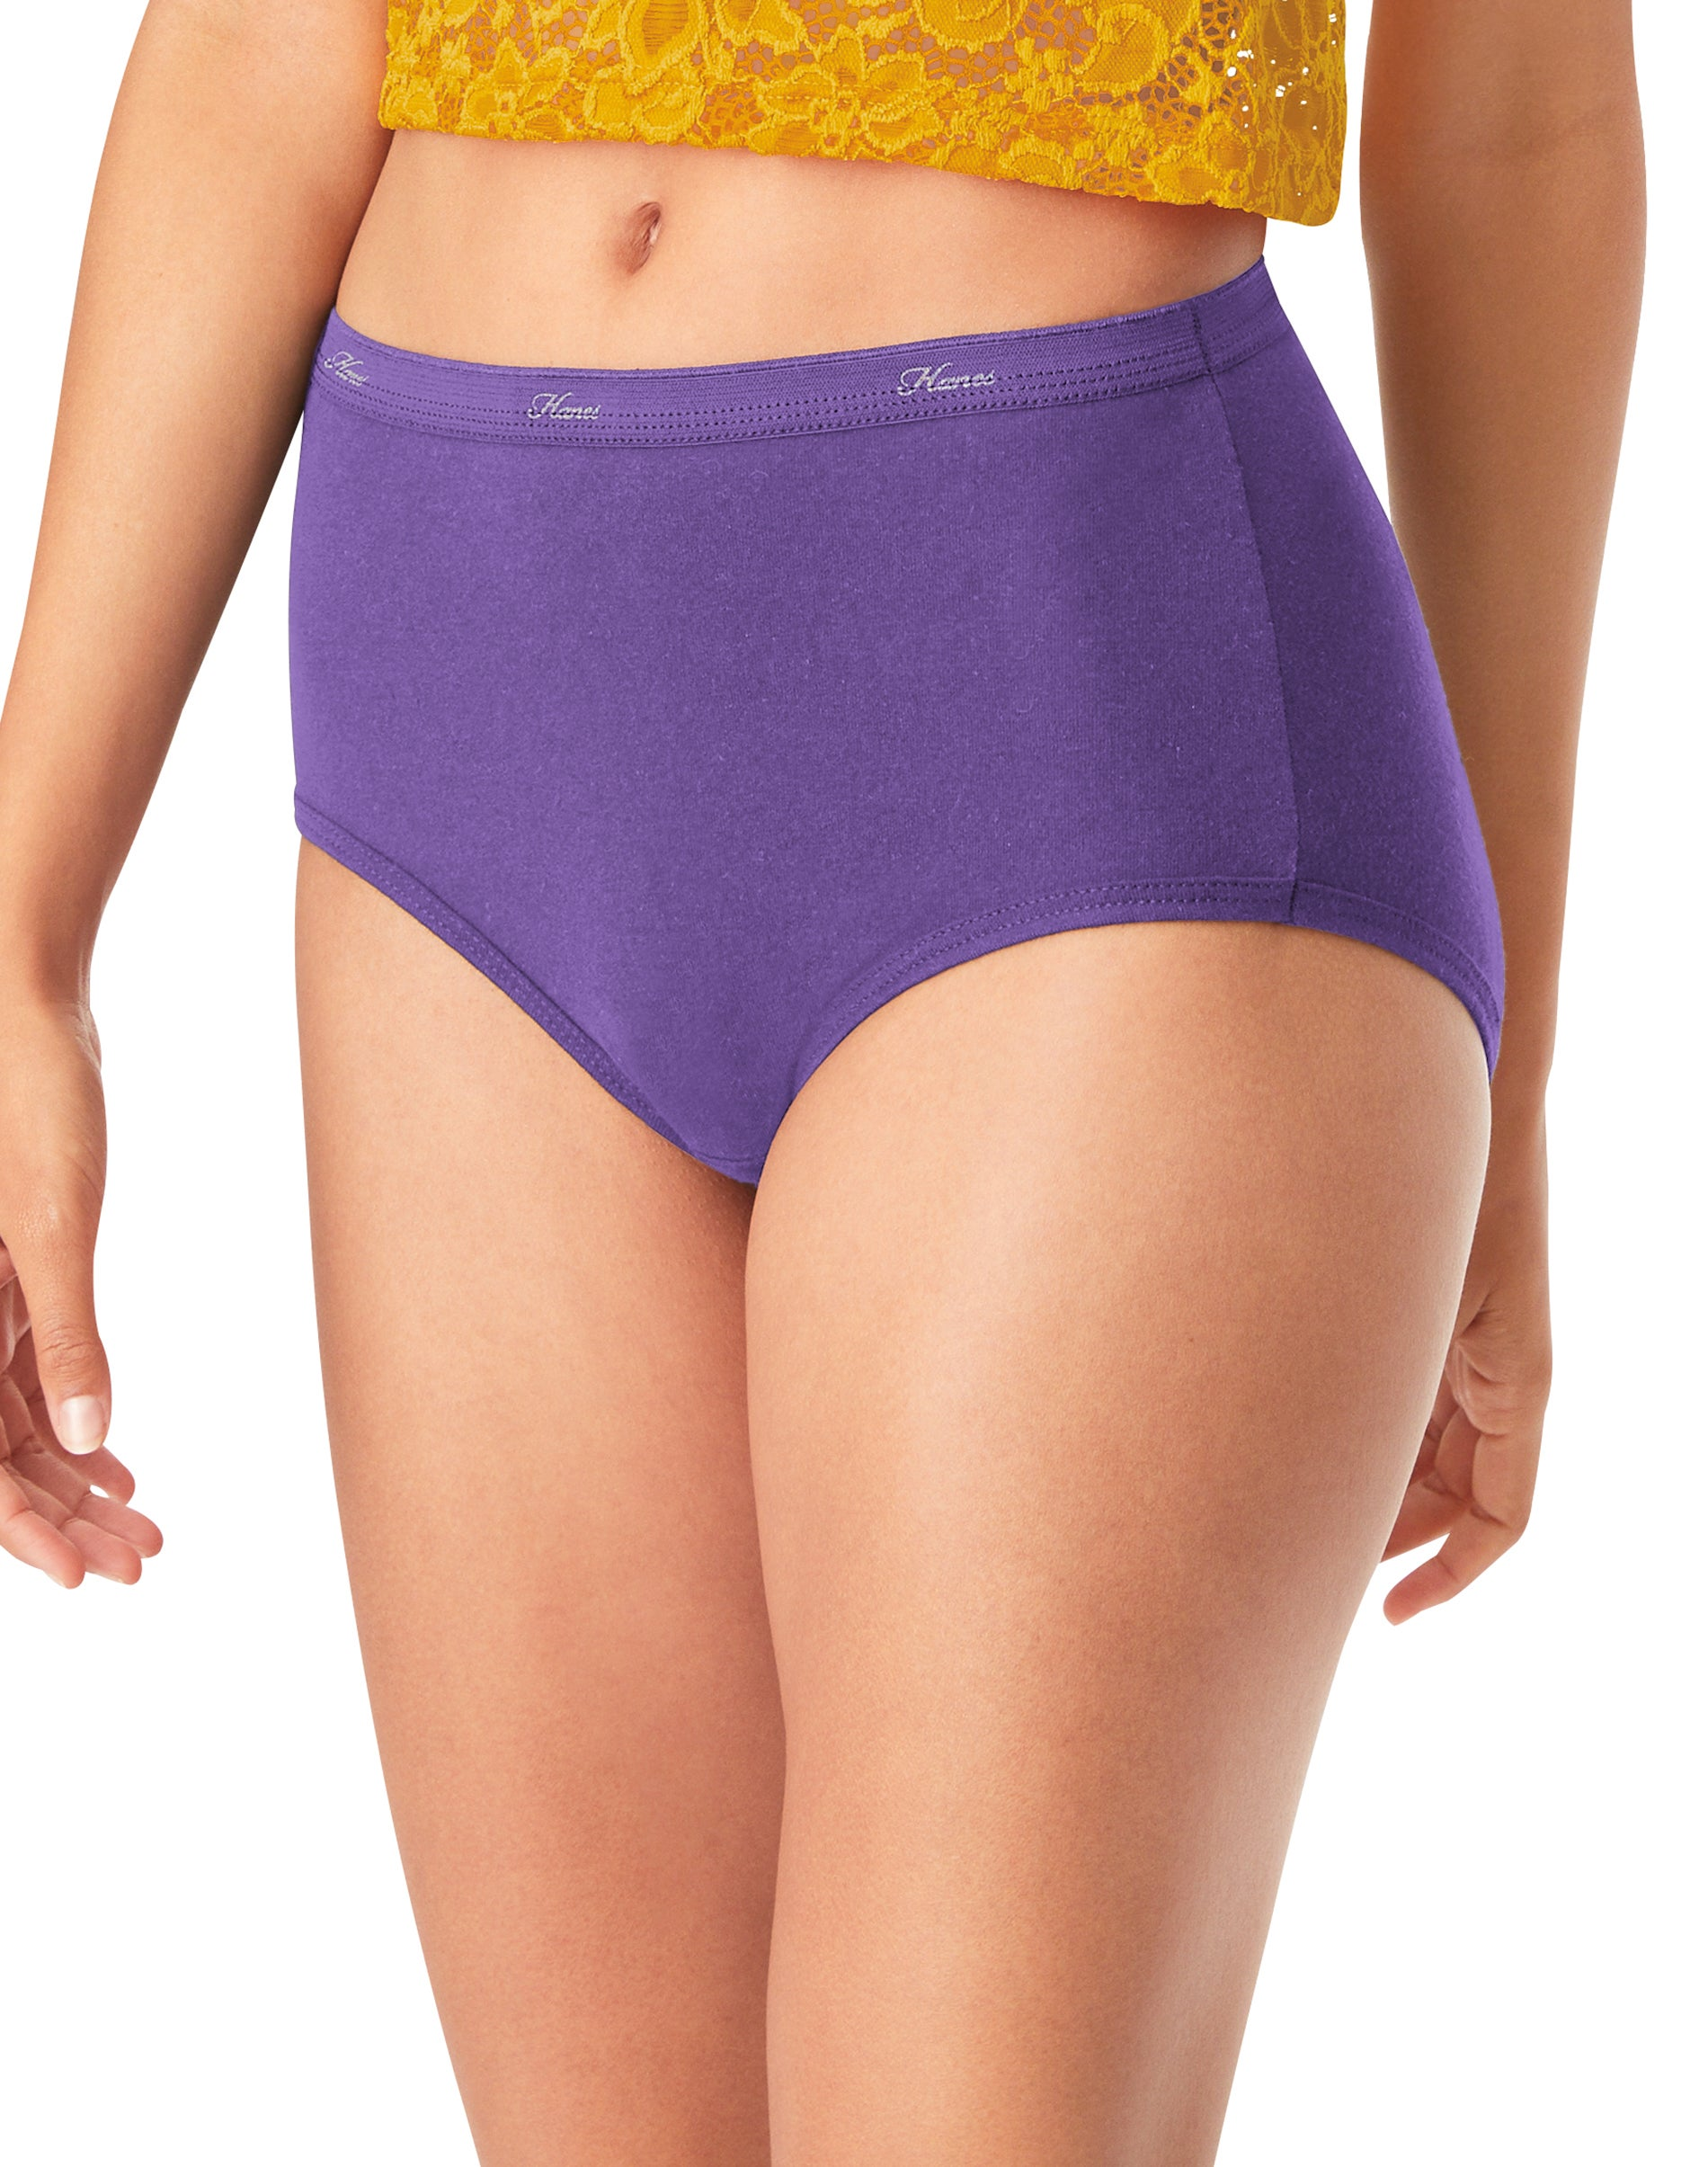 Assorted, 10 Pack Of 9 byHanes Hanes Little Girls Brief